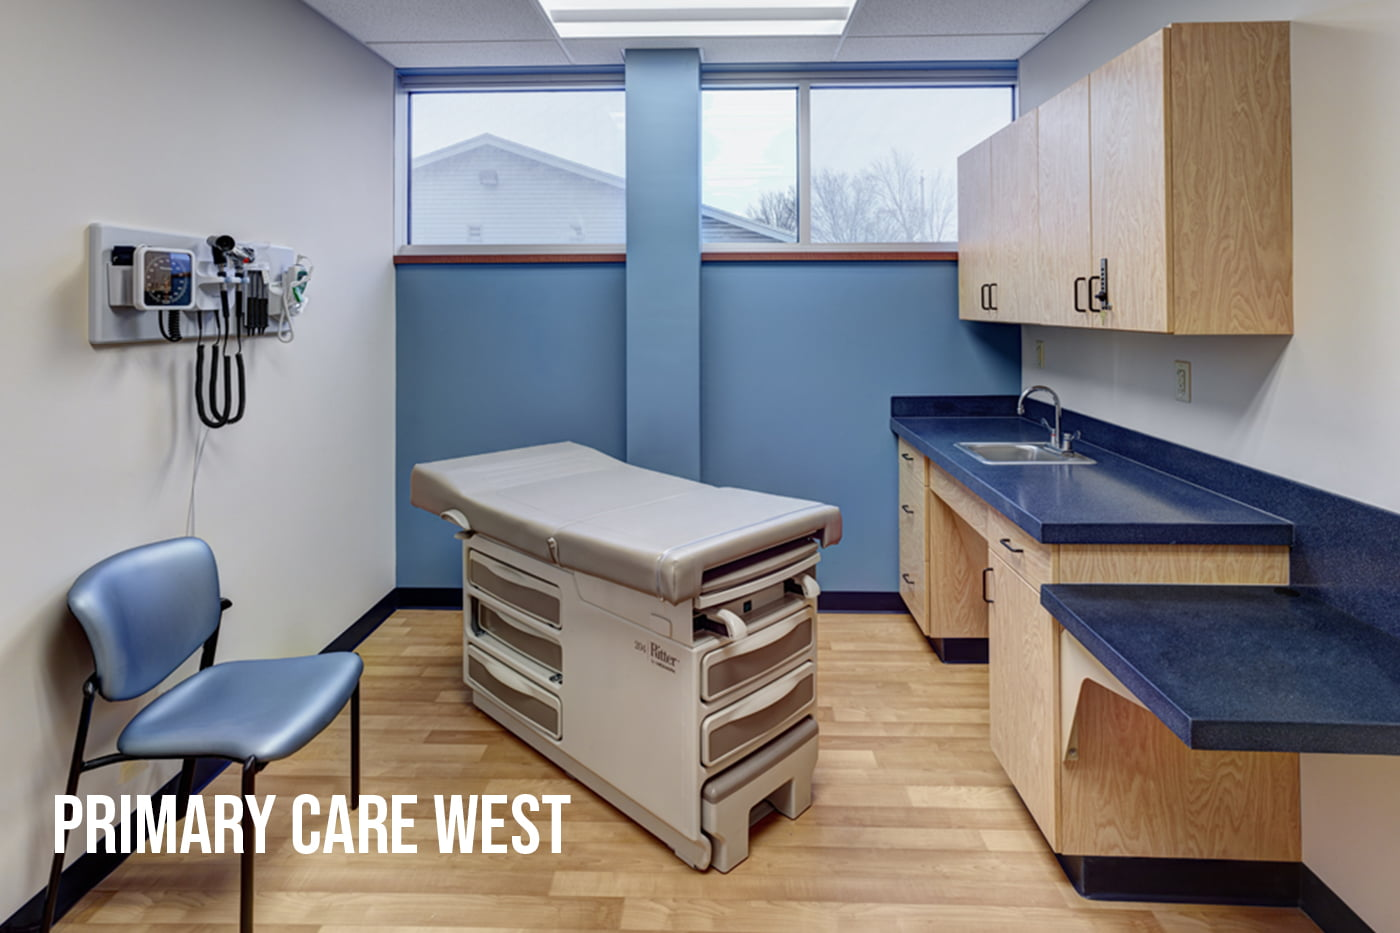 St. Joes Primary Care West